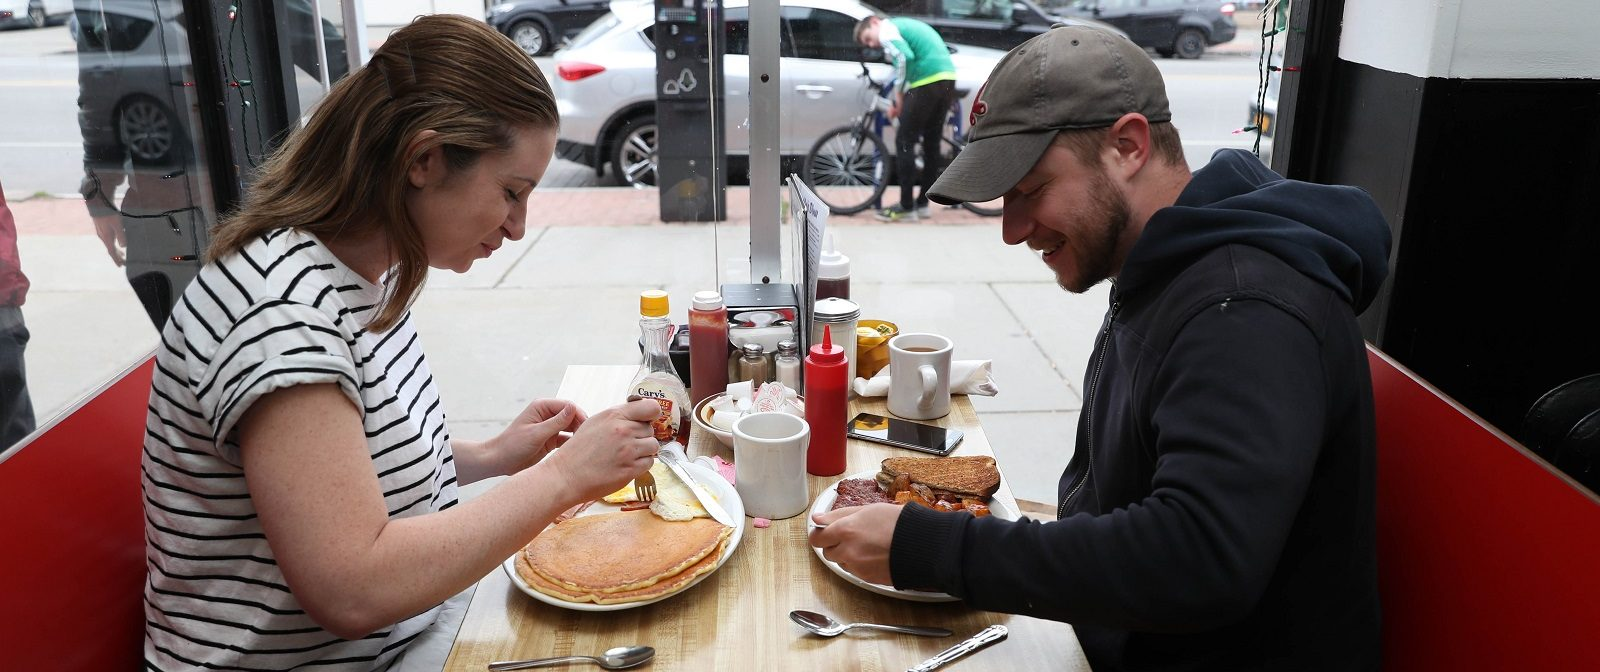 Follow our weekend itinerary for a busy weekend of eating, drinking, hiking, gaming and movie-watching. (Sharon Cantillon/Buffalo News file photo)